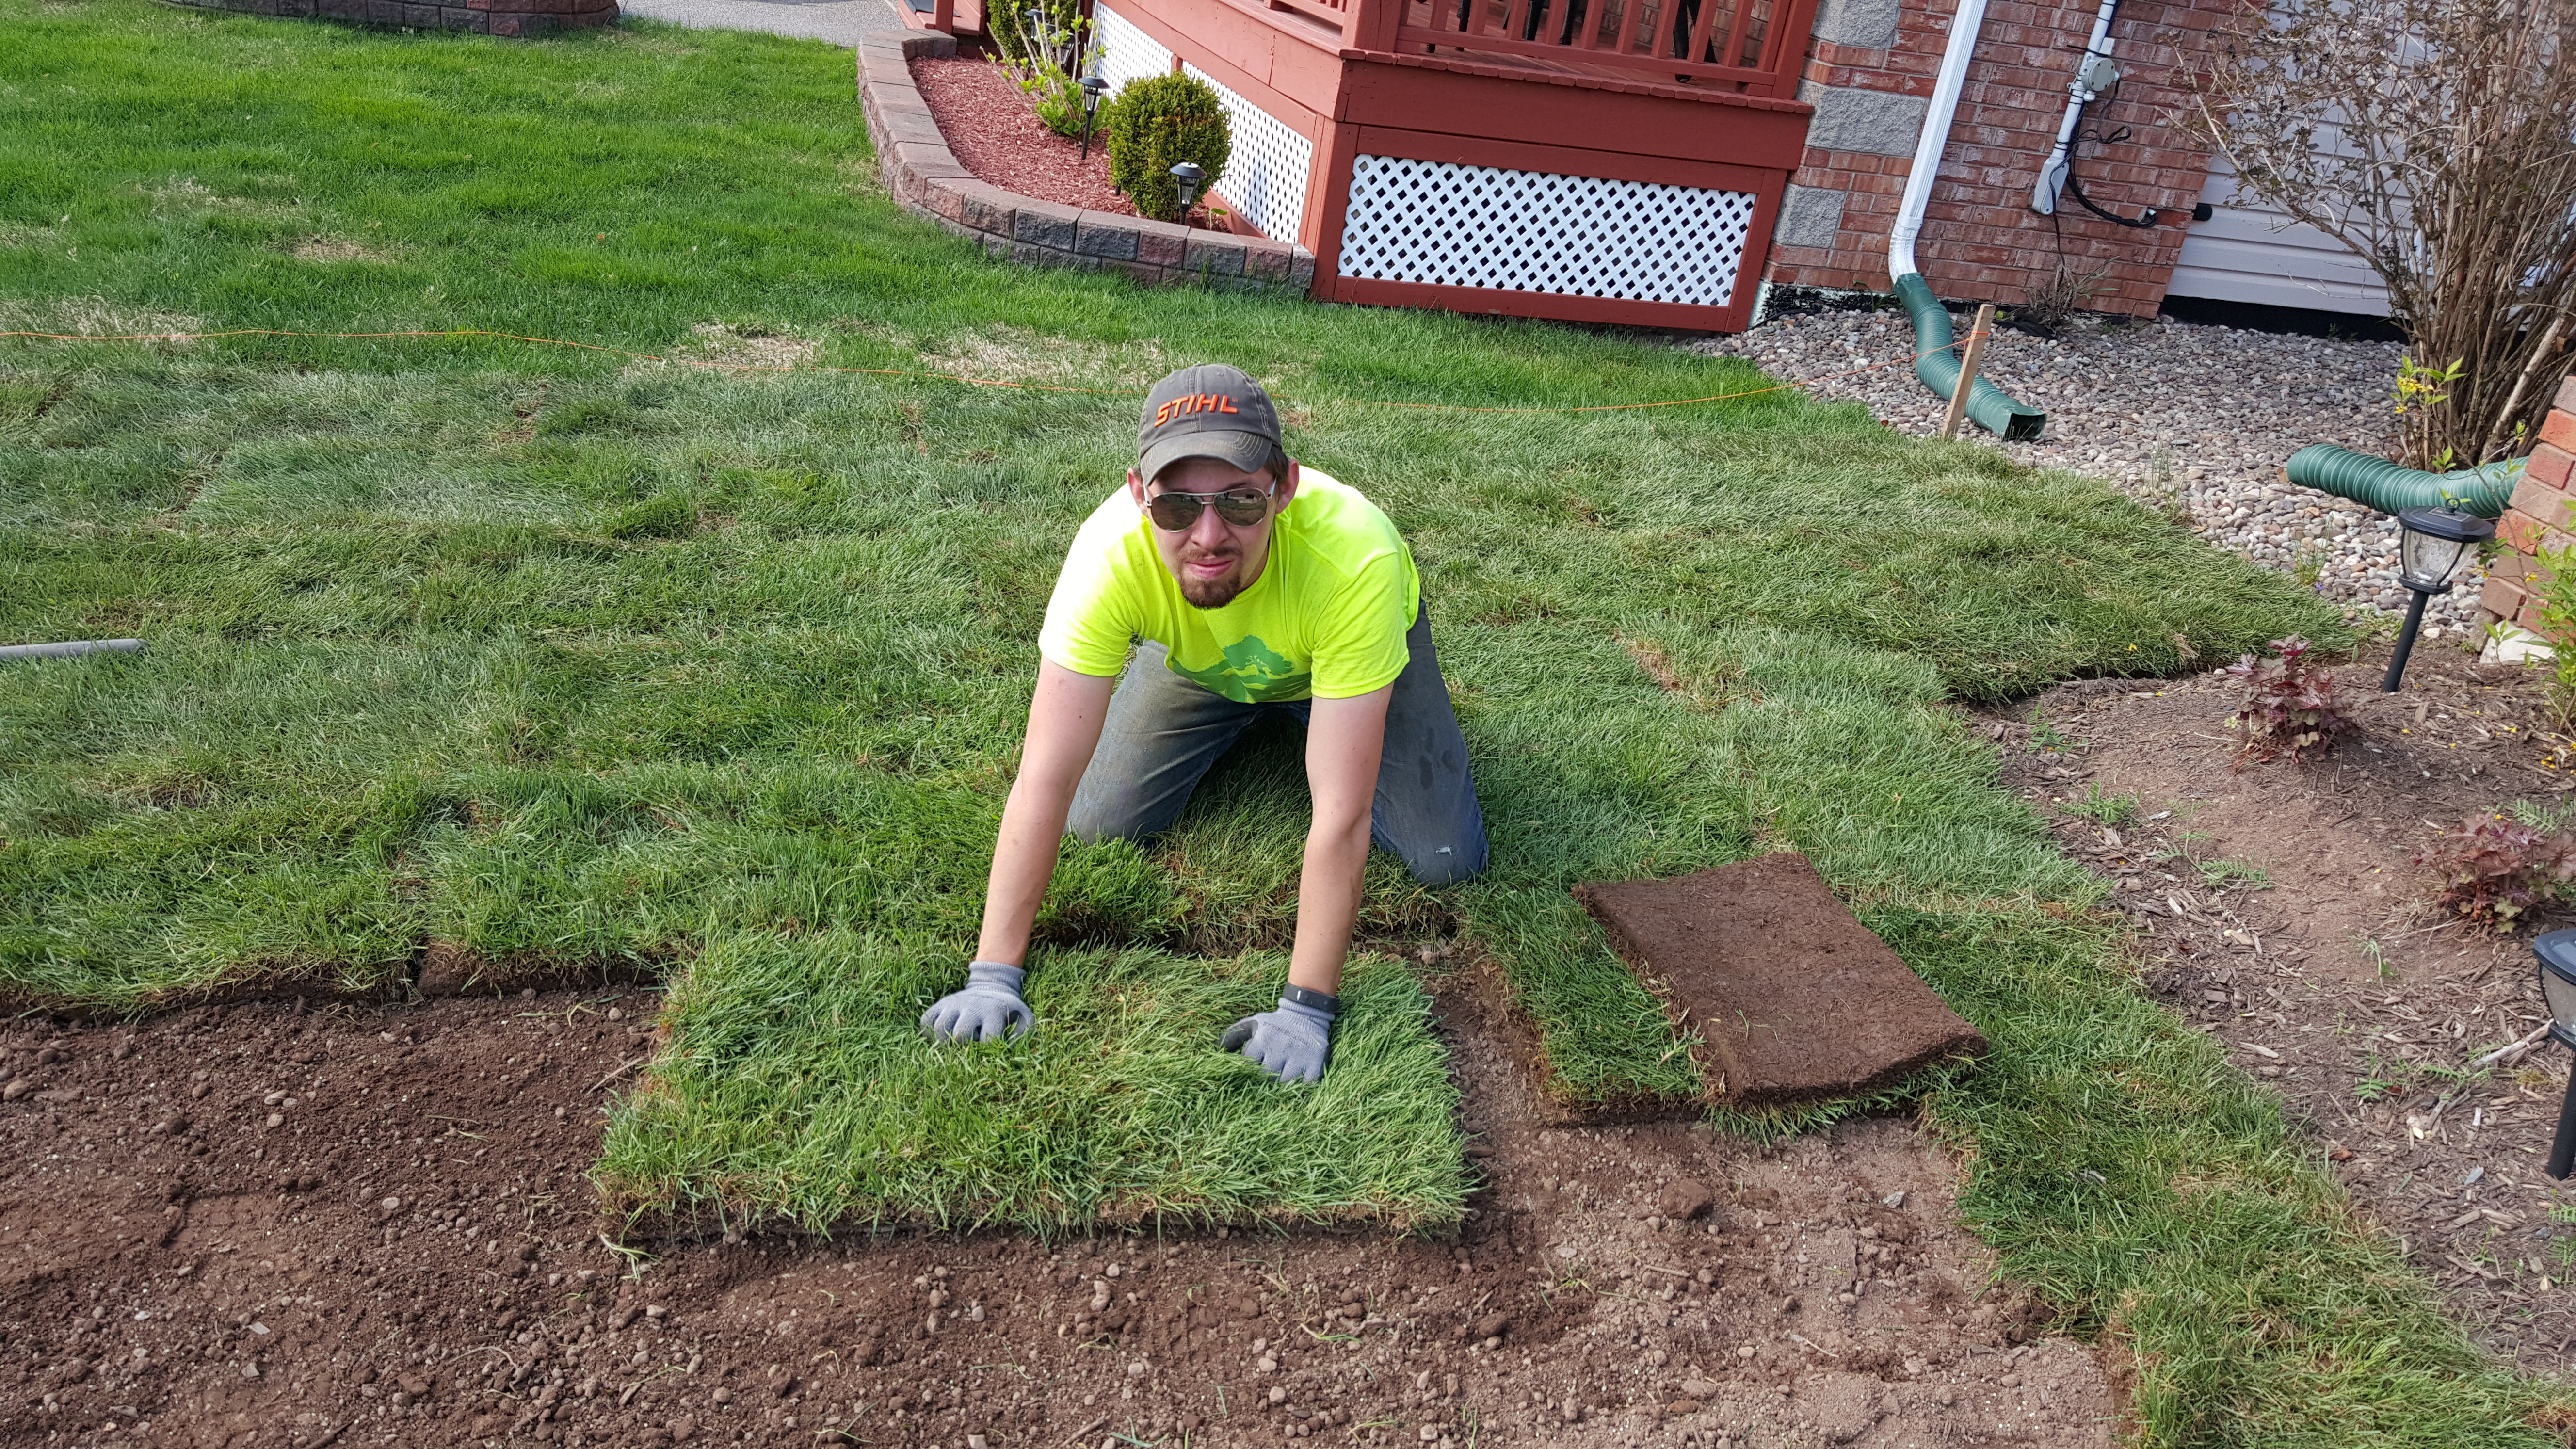 Richard laying Sod